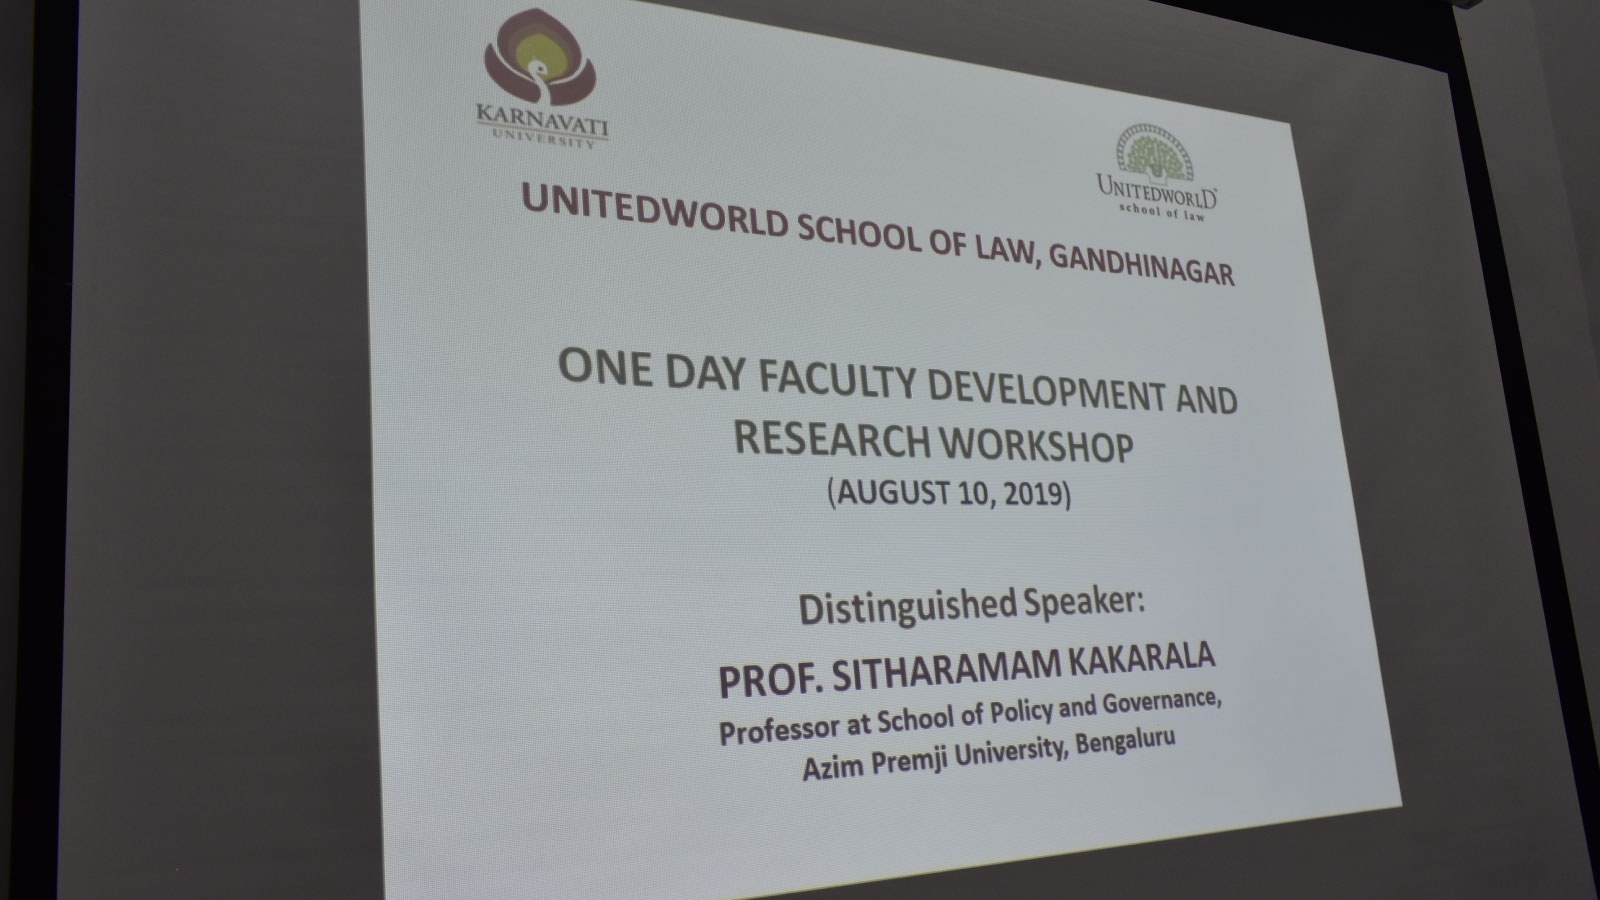 Faculty Development & Research Workshop Image